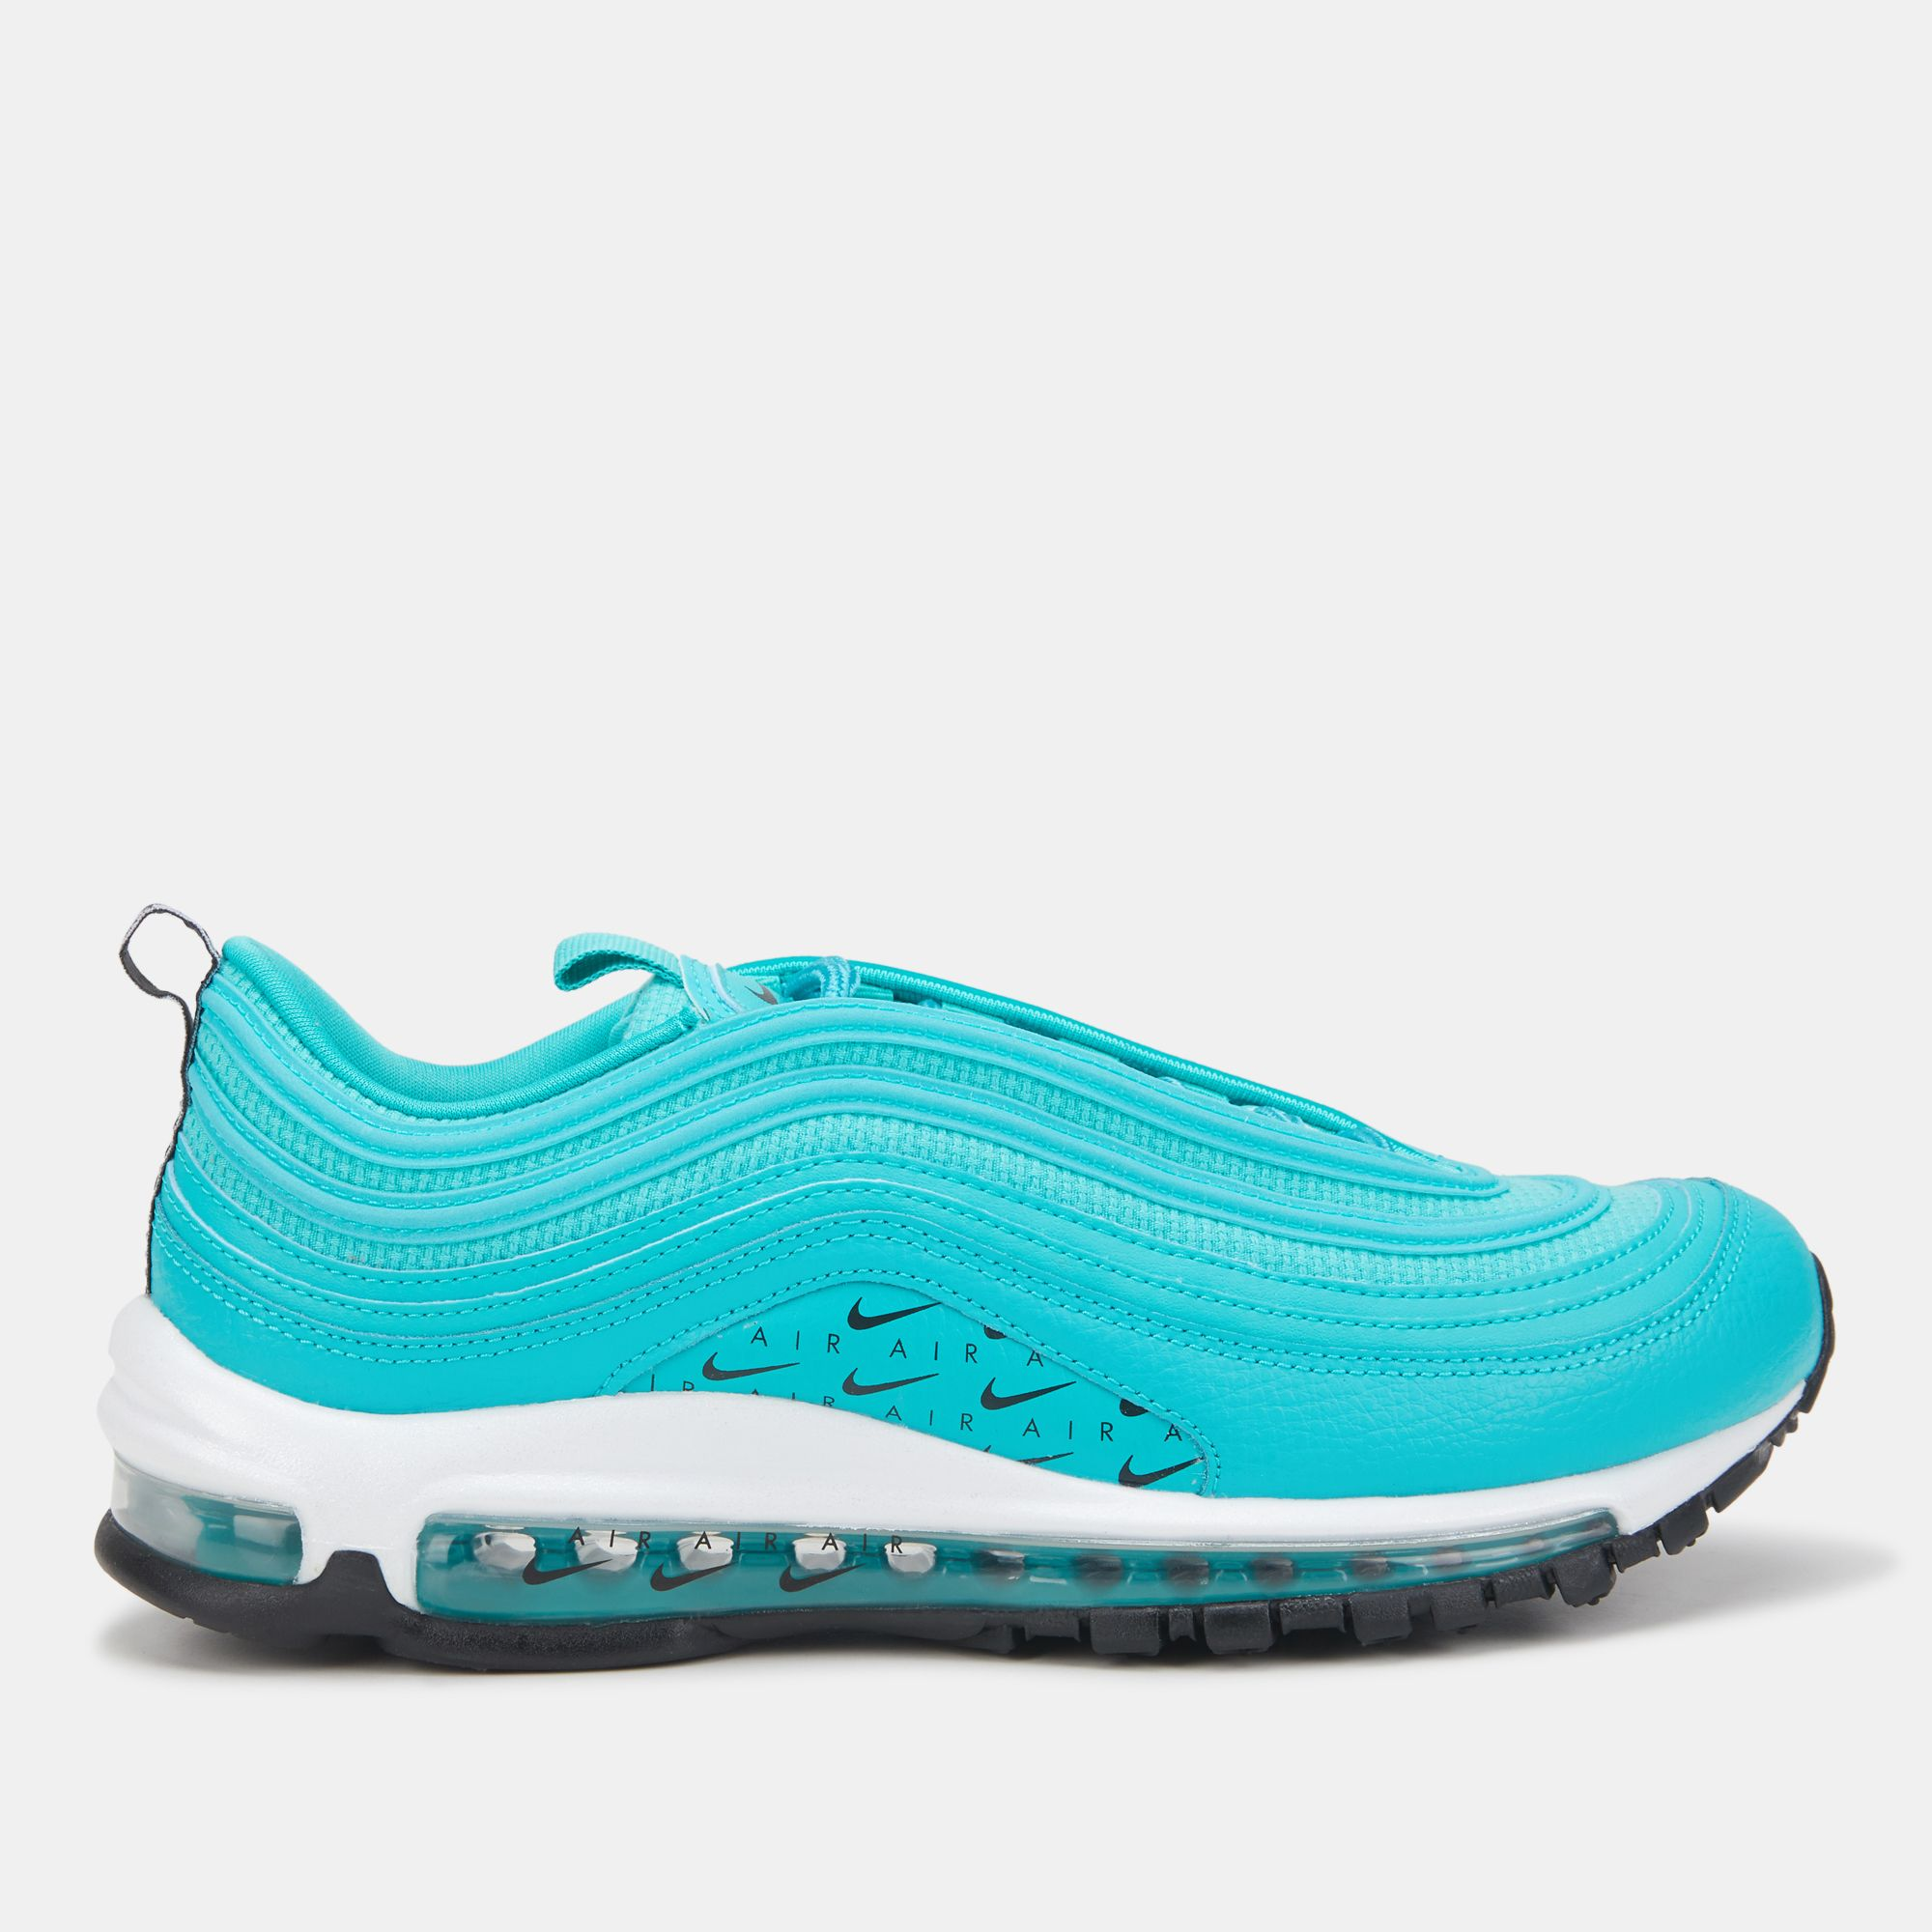 0ec4b42d09 Nike Air Max '97 Lux Shoe | Sneakers | Shoes | Womens | SSS